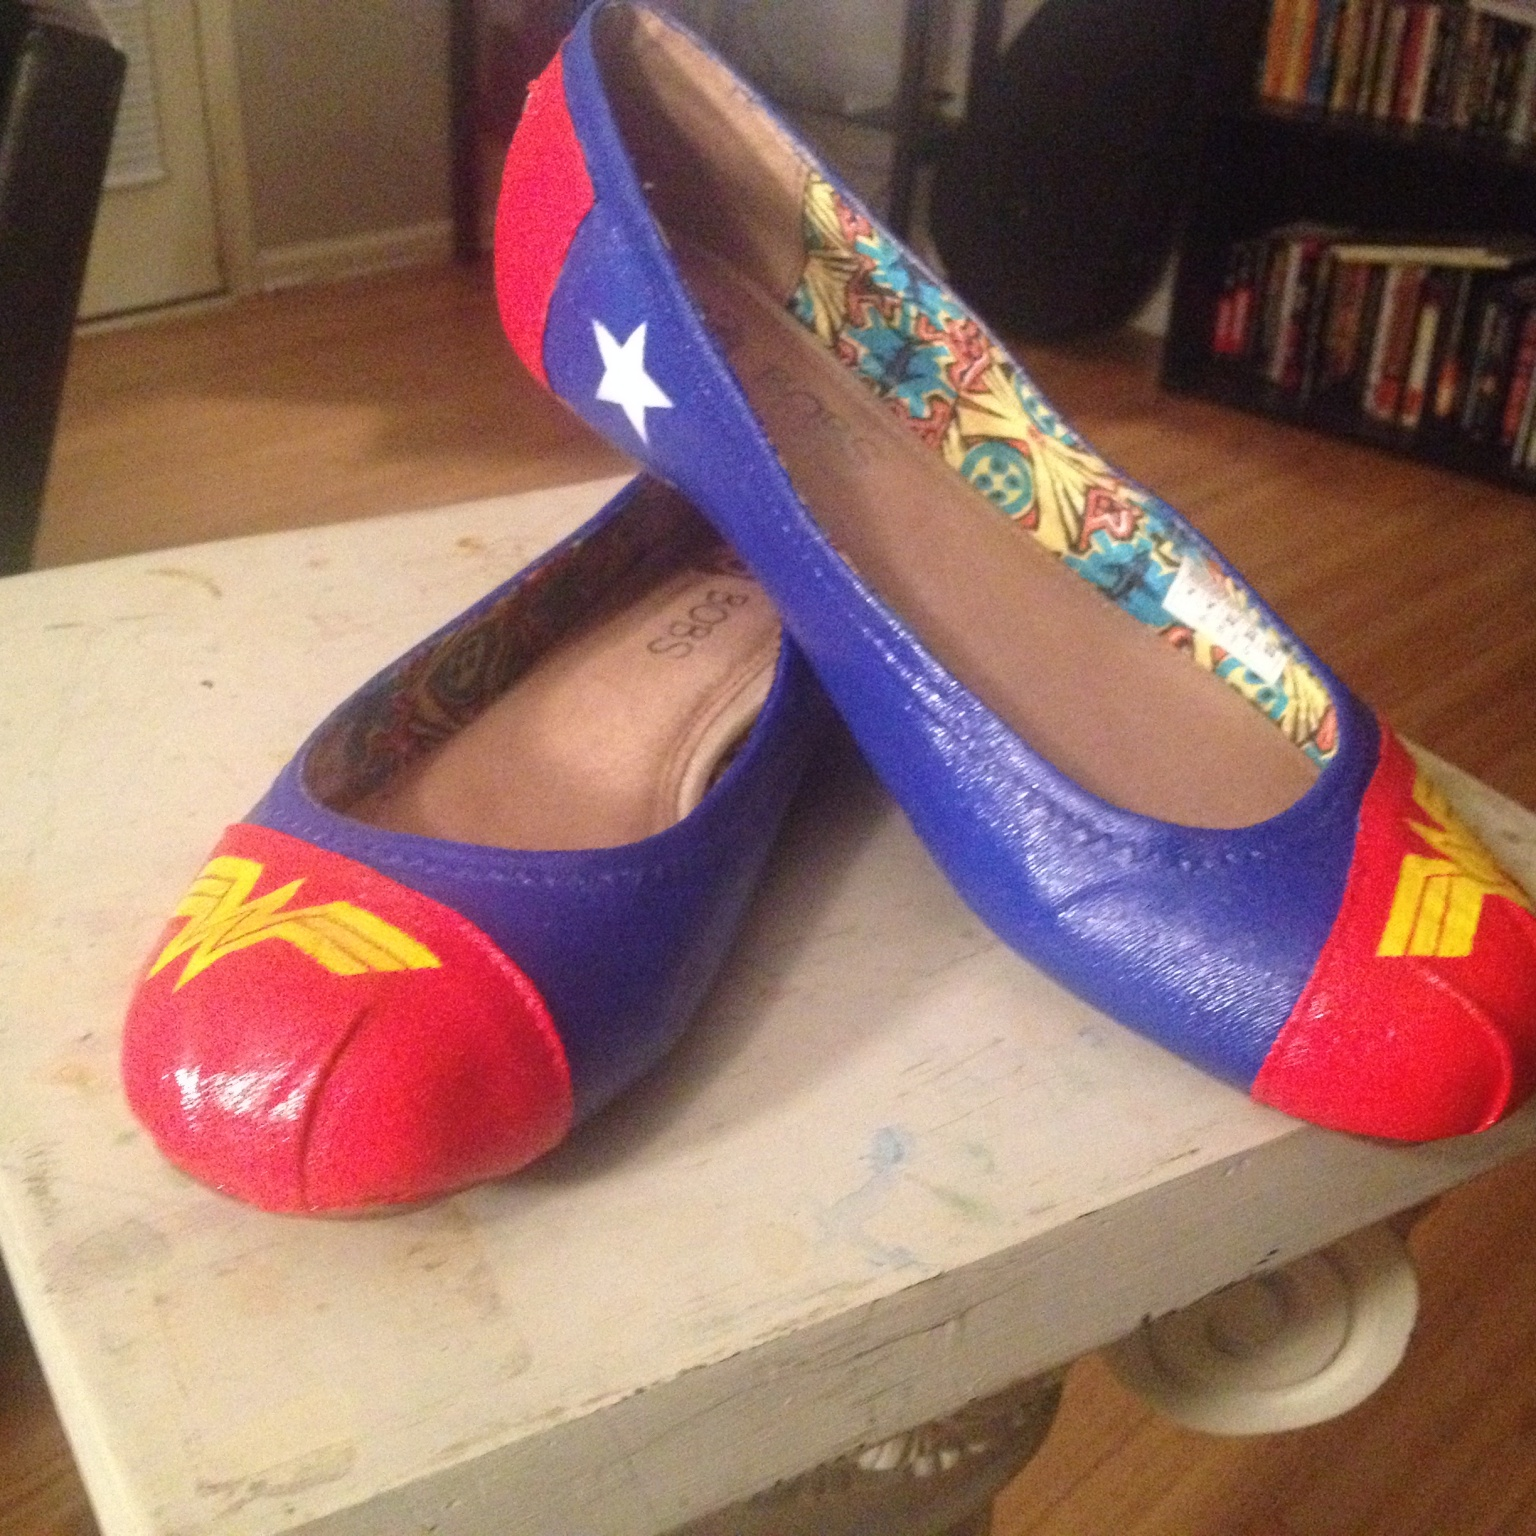 Wonder Woman Shoes for the Discerning Warrior Princess